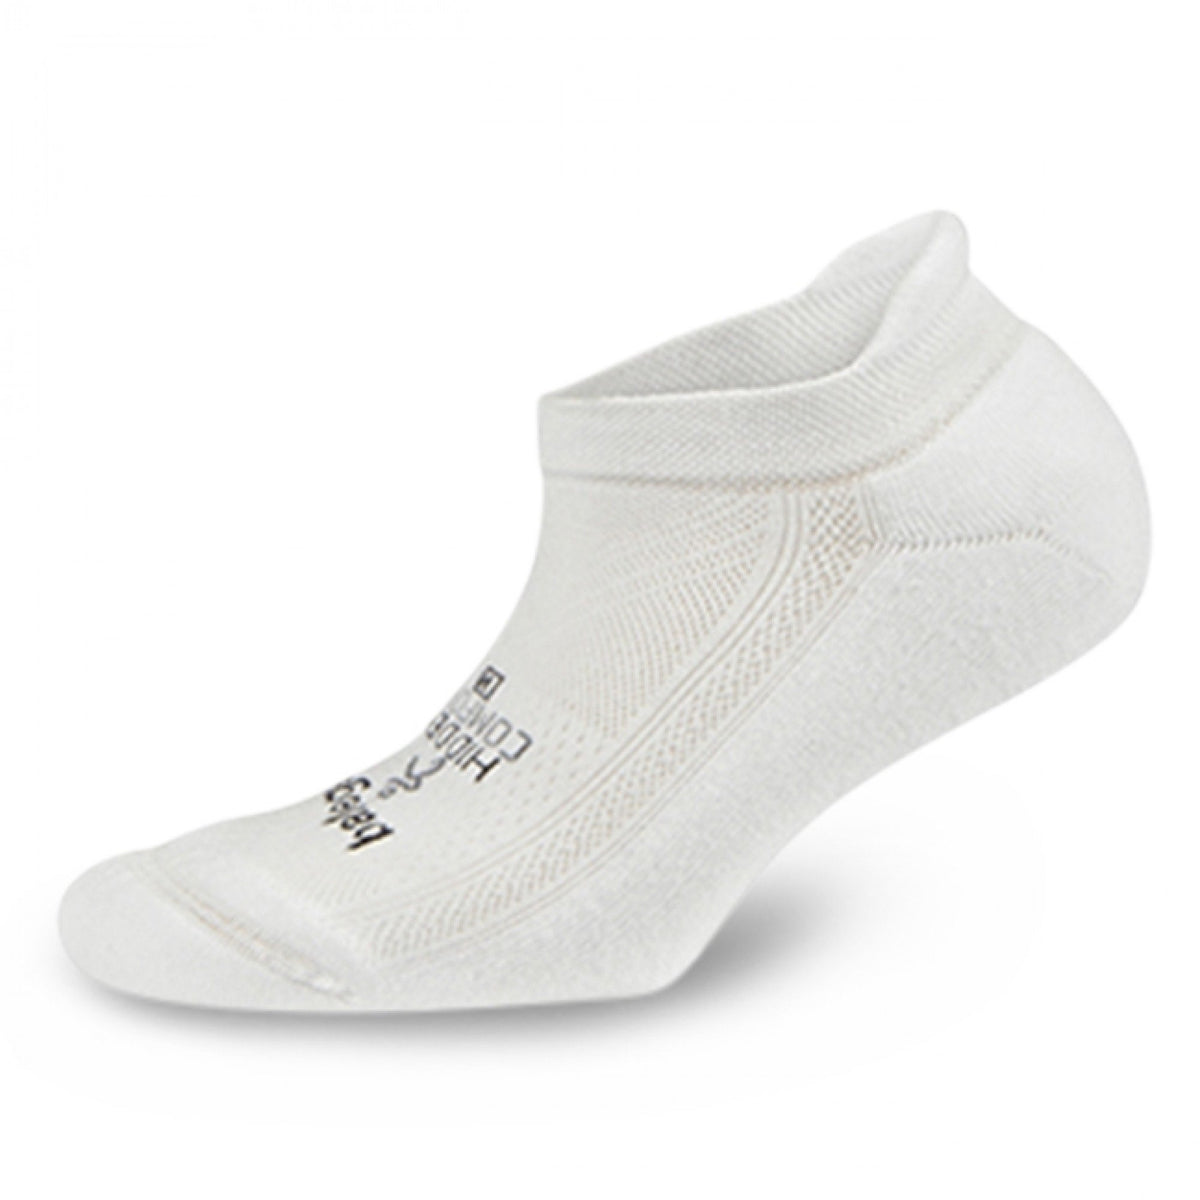 Balega Hidden Comfort Socks - Sole Motive